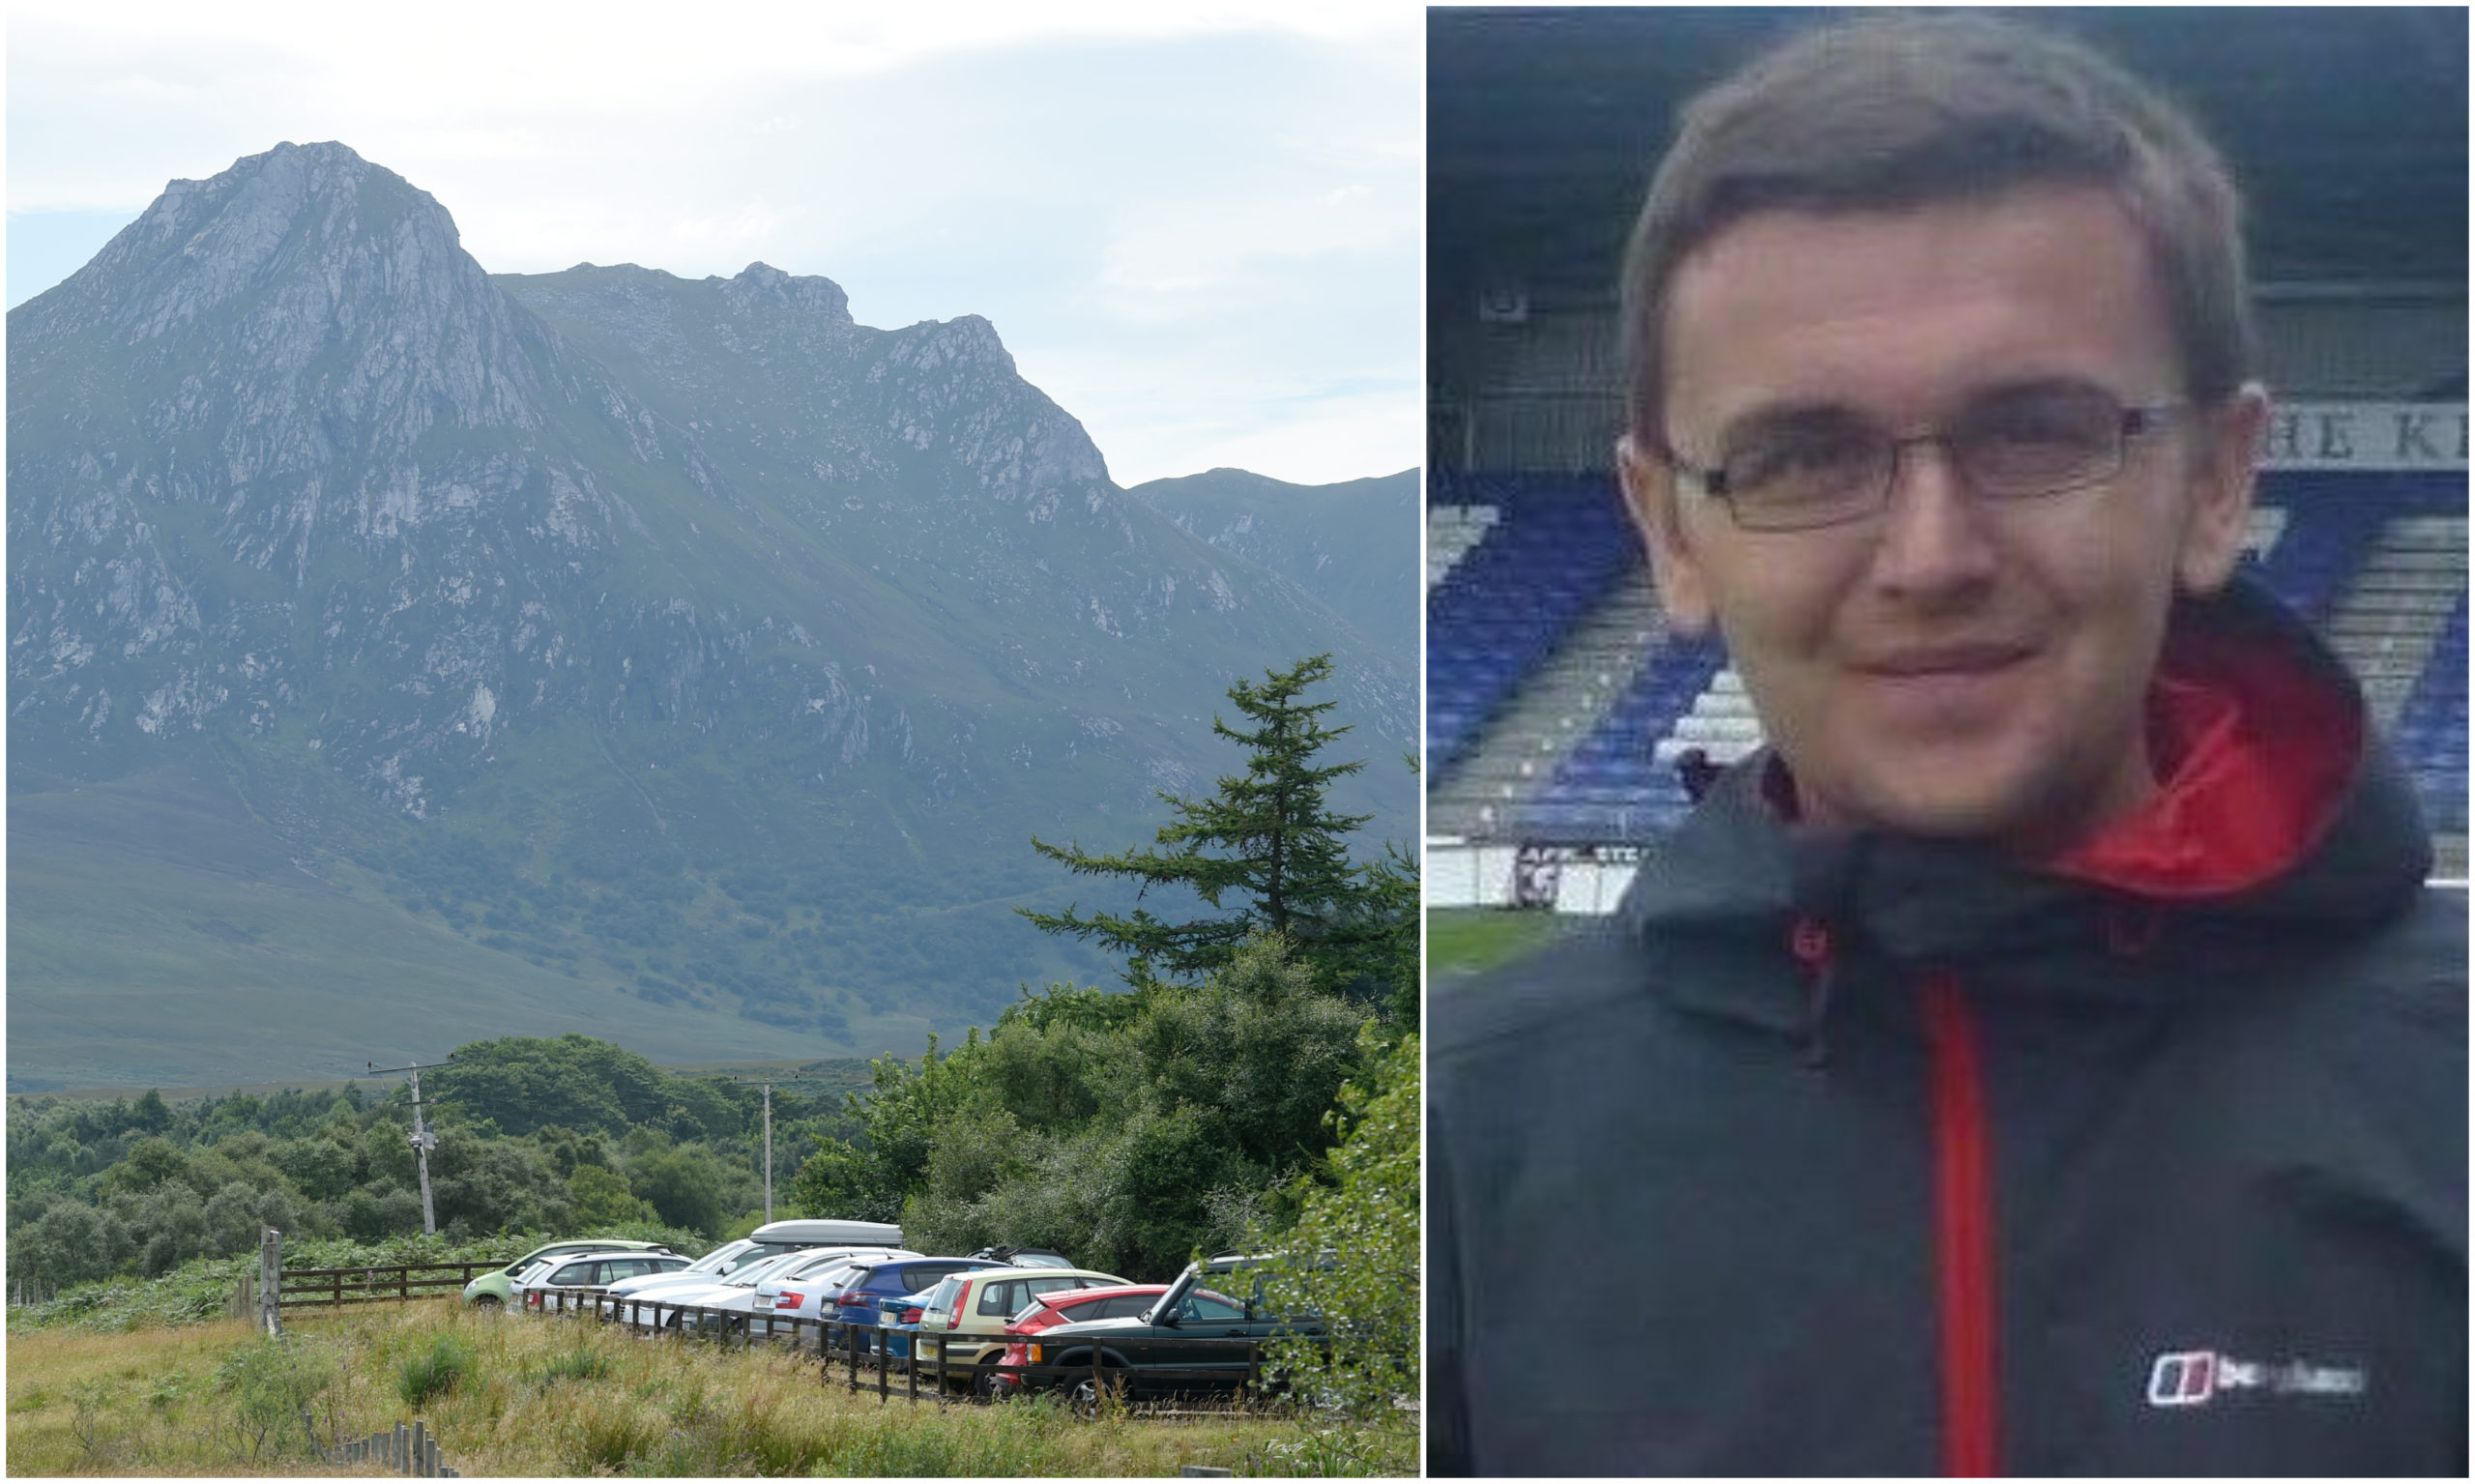 A body was discovered yesterday in the searches for missing Dornoch man Stuart Campbell